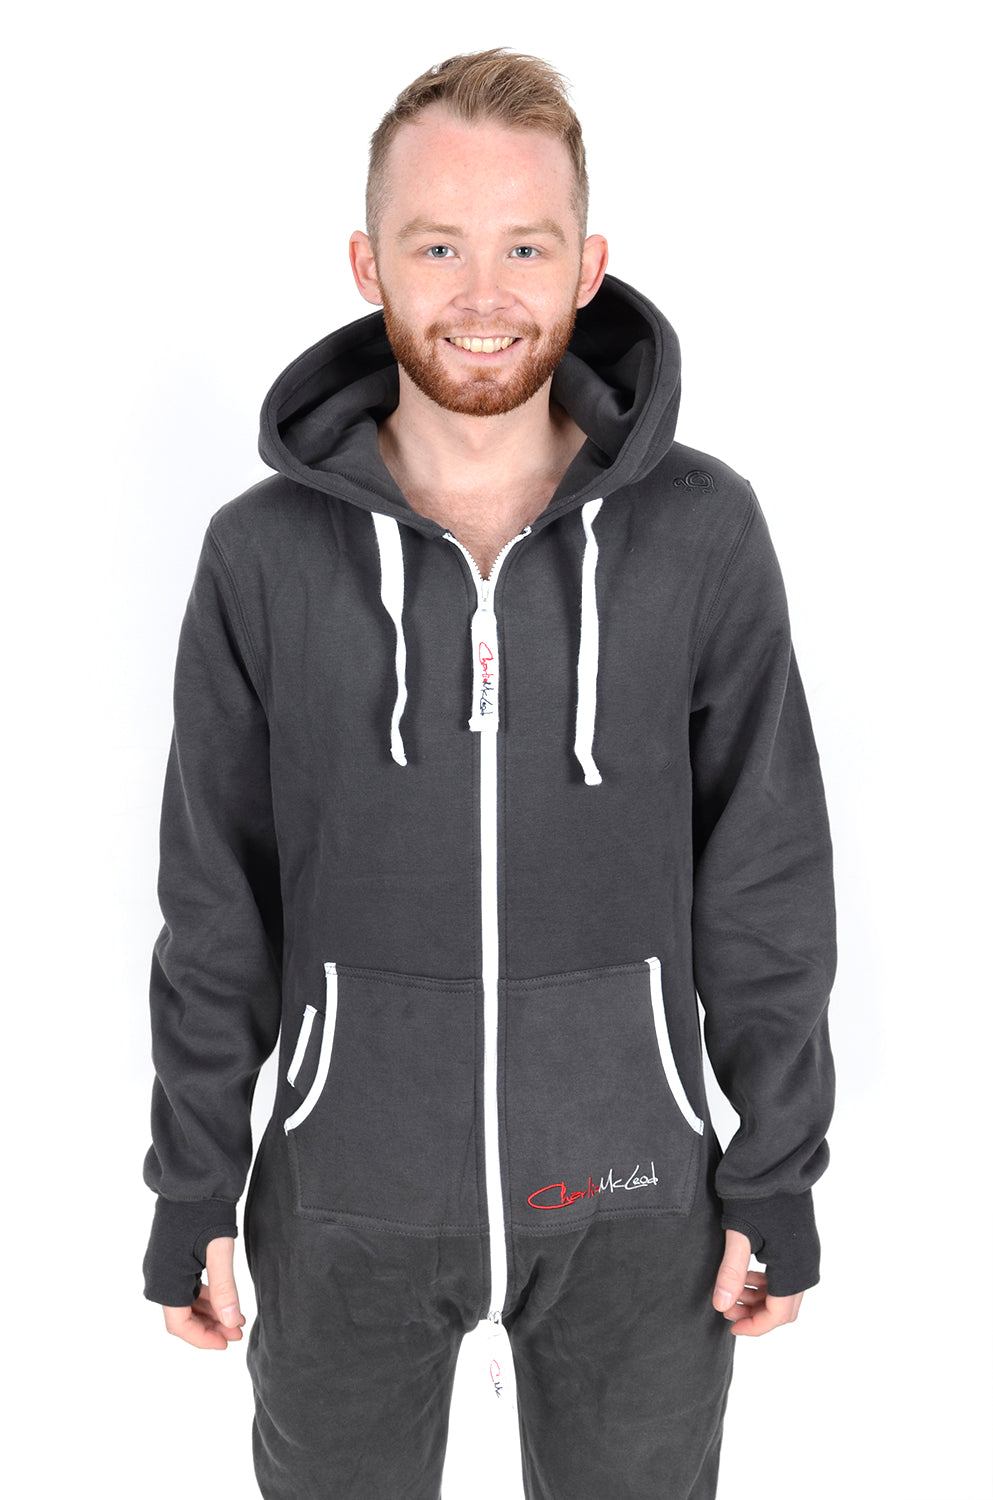 Chilled Charcoal Onesie